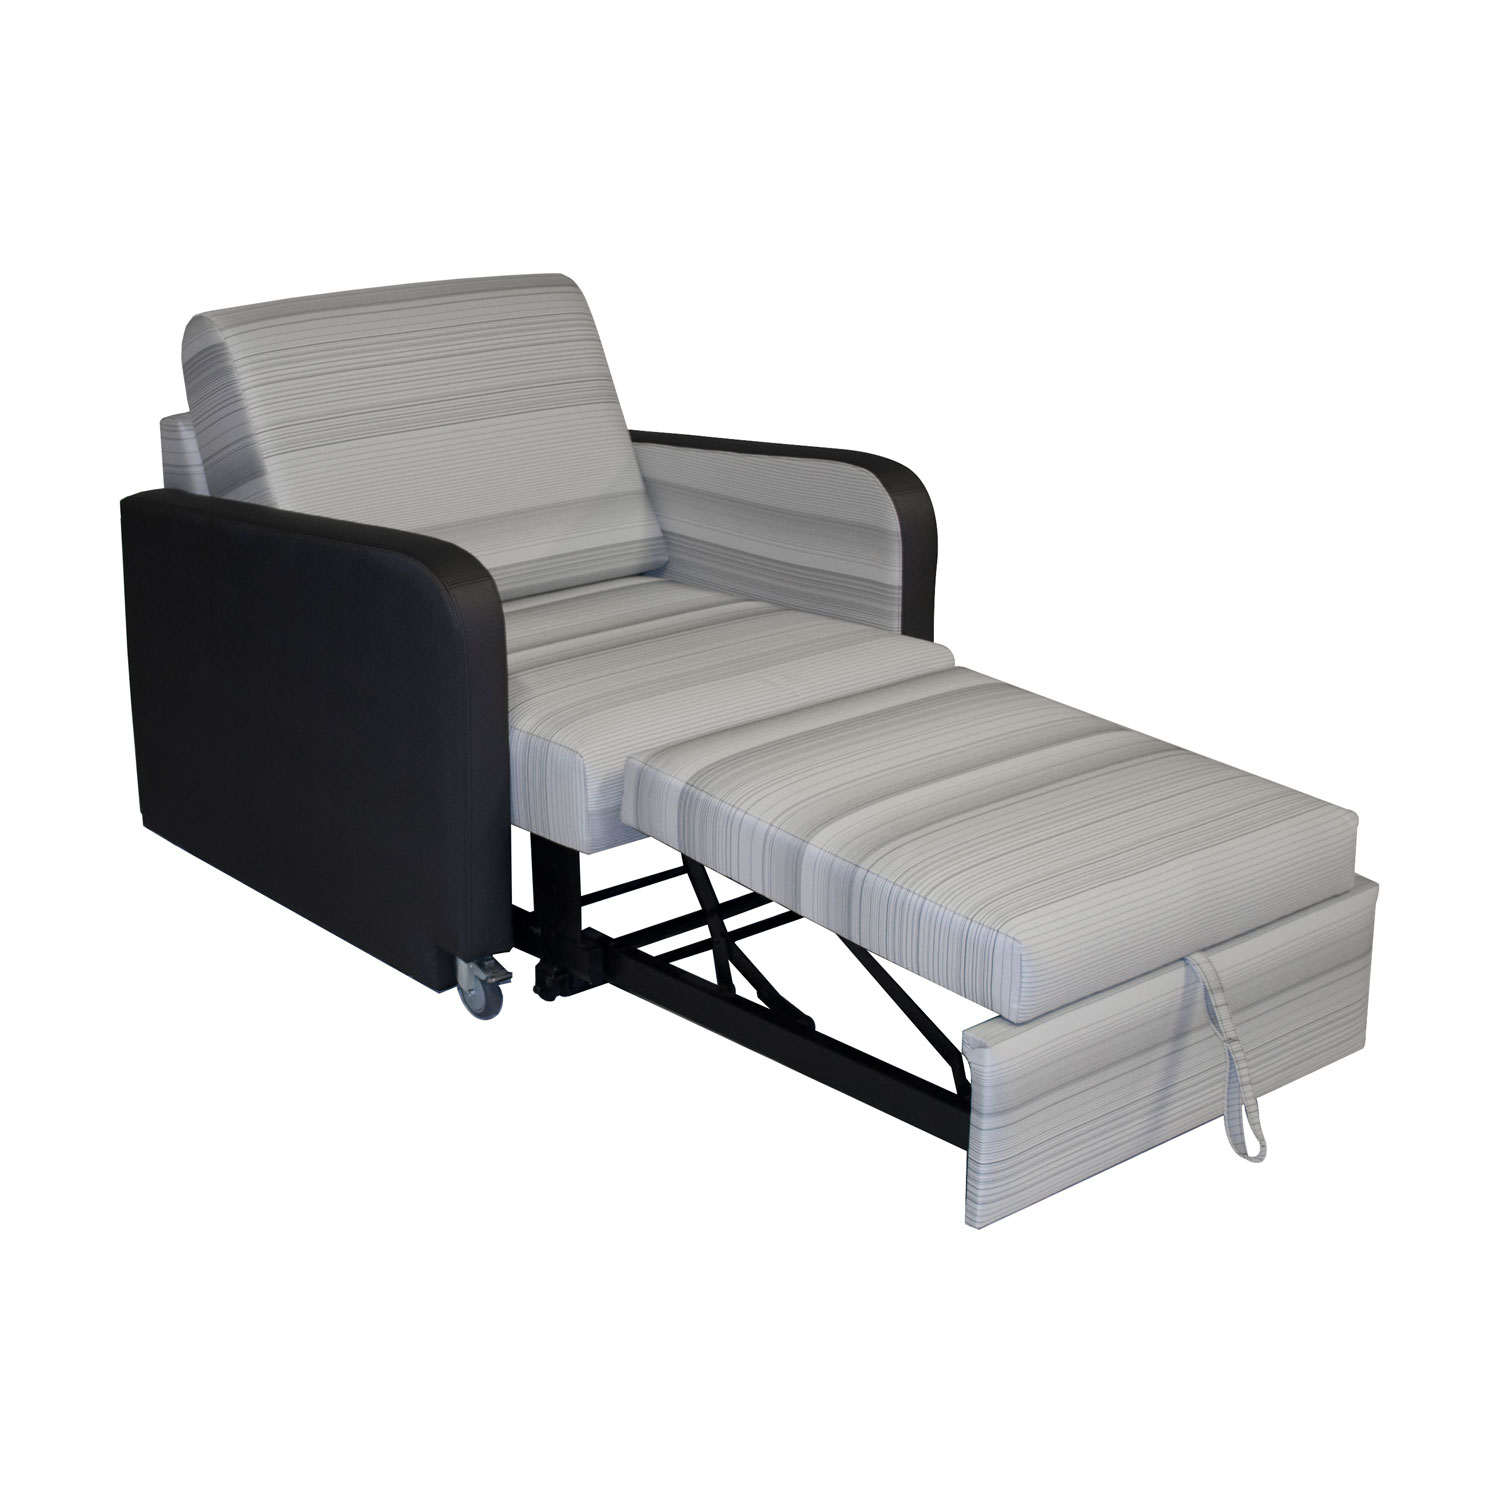 small white sofa sectional for to armchair spaces chair storage with fabric velvet sofas chairs converts fold ideas pull table single sleeper back furniture and ottoman couch plus wheels double out black convertible simple folding cover wingback footstool leather